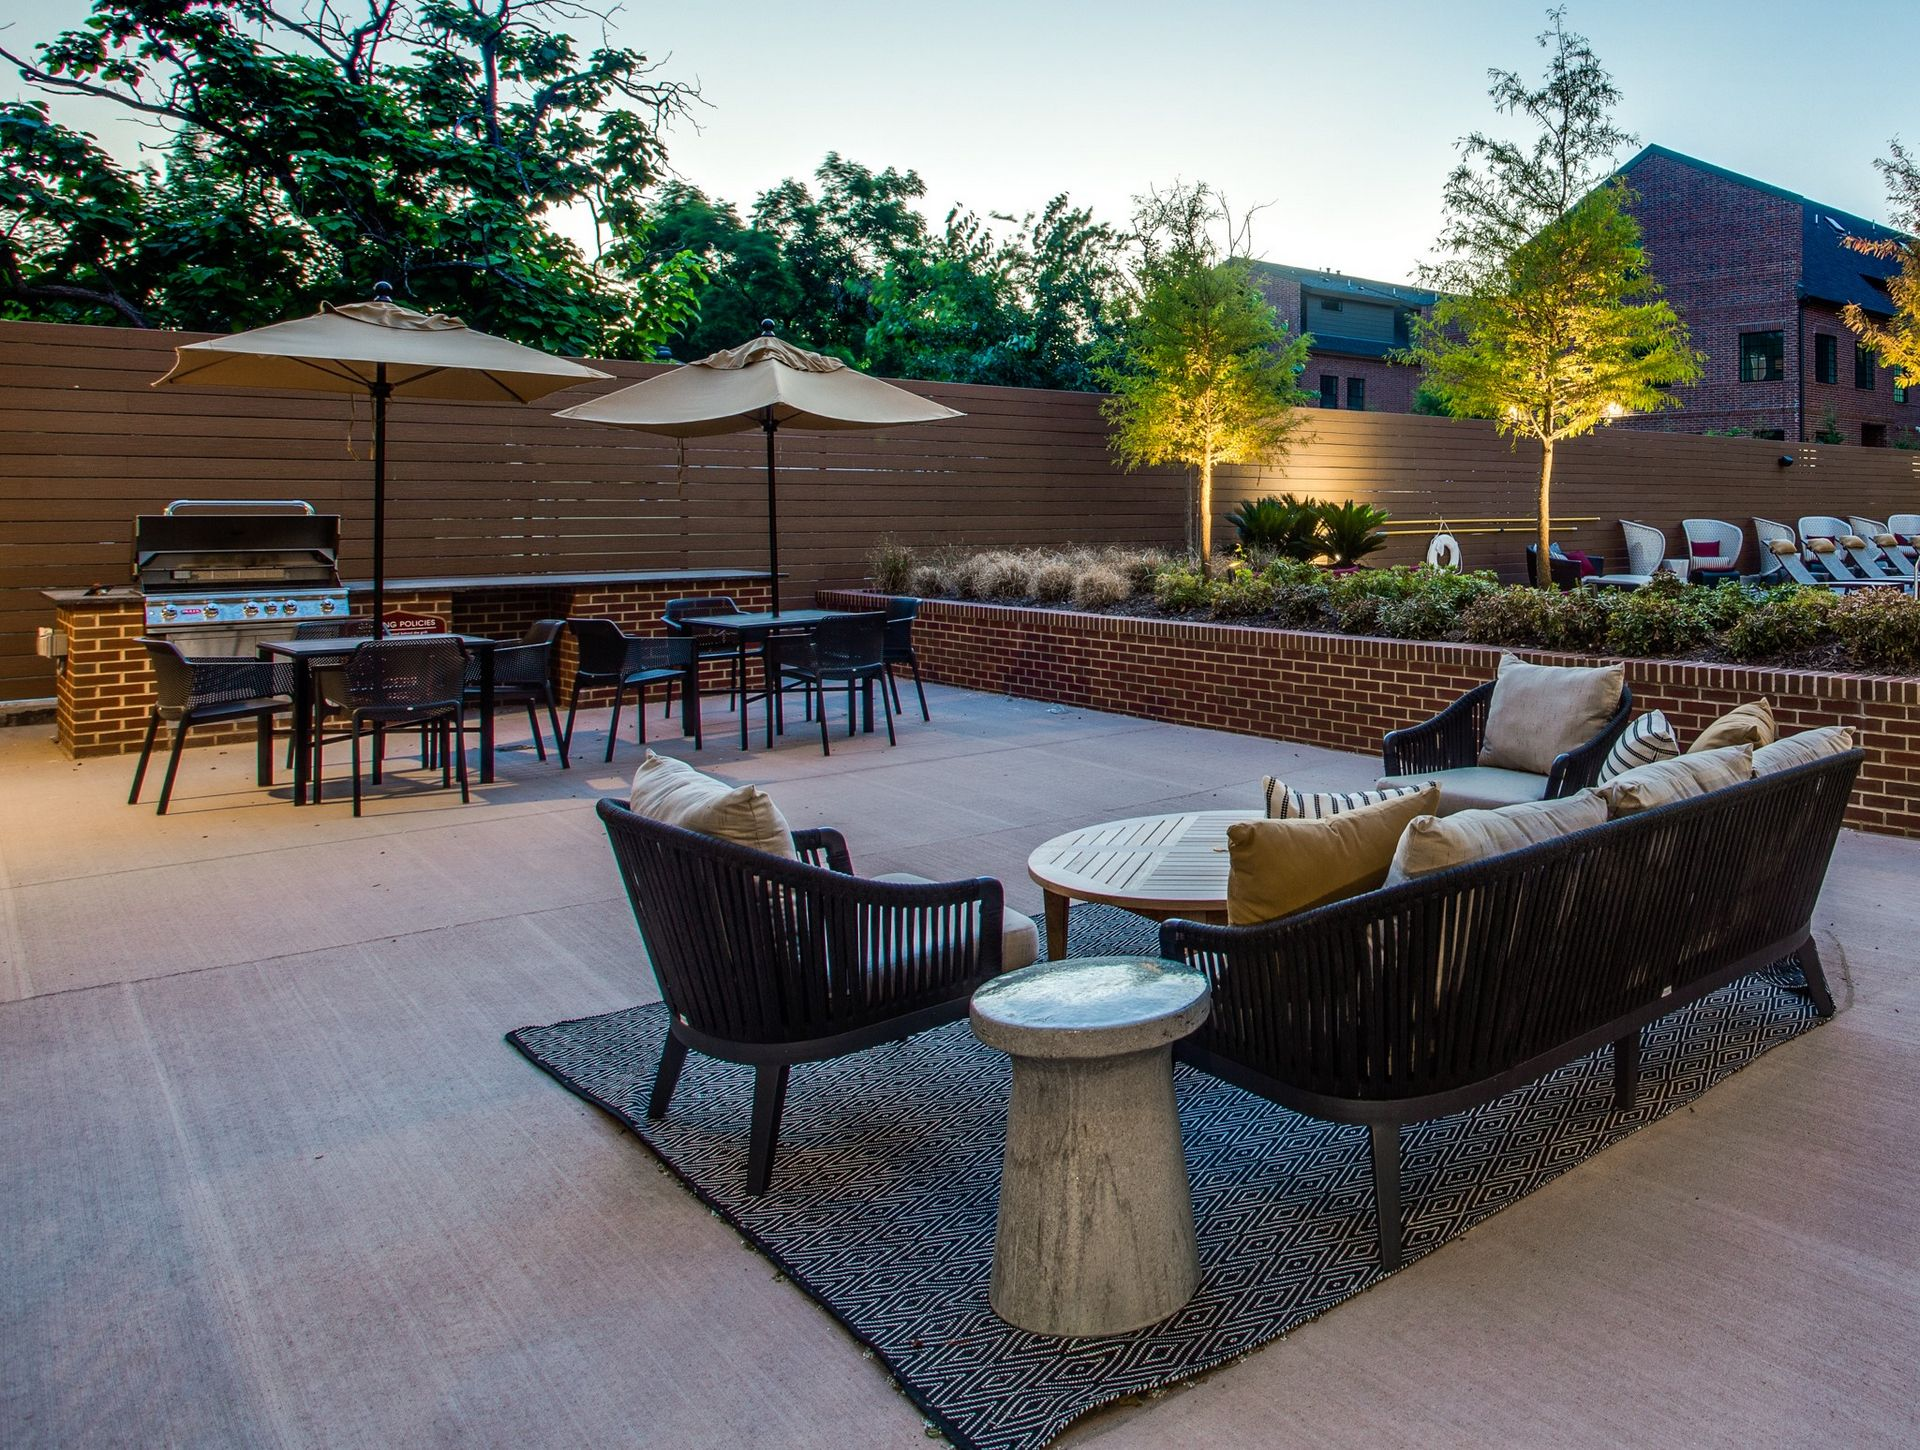 Outdoor space with seating and grilling station